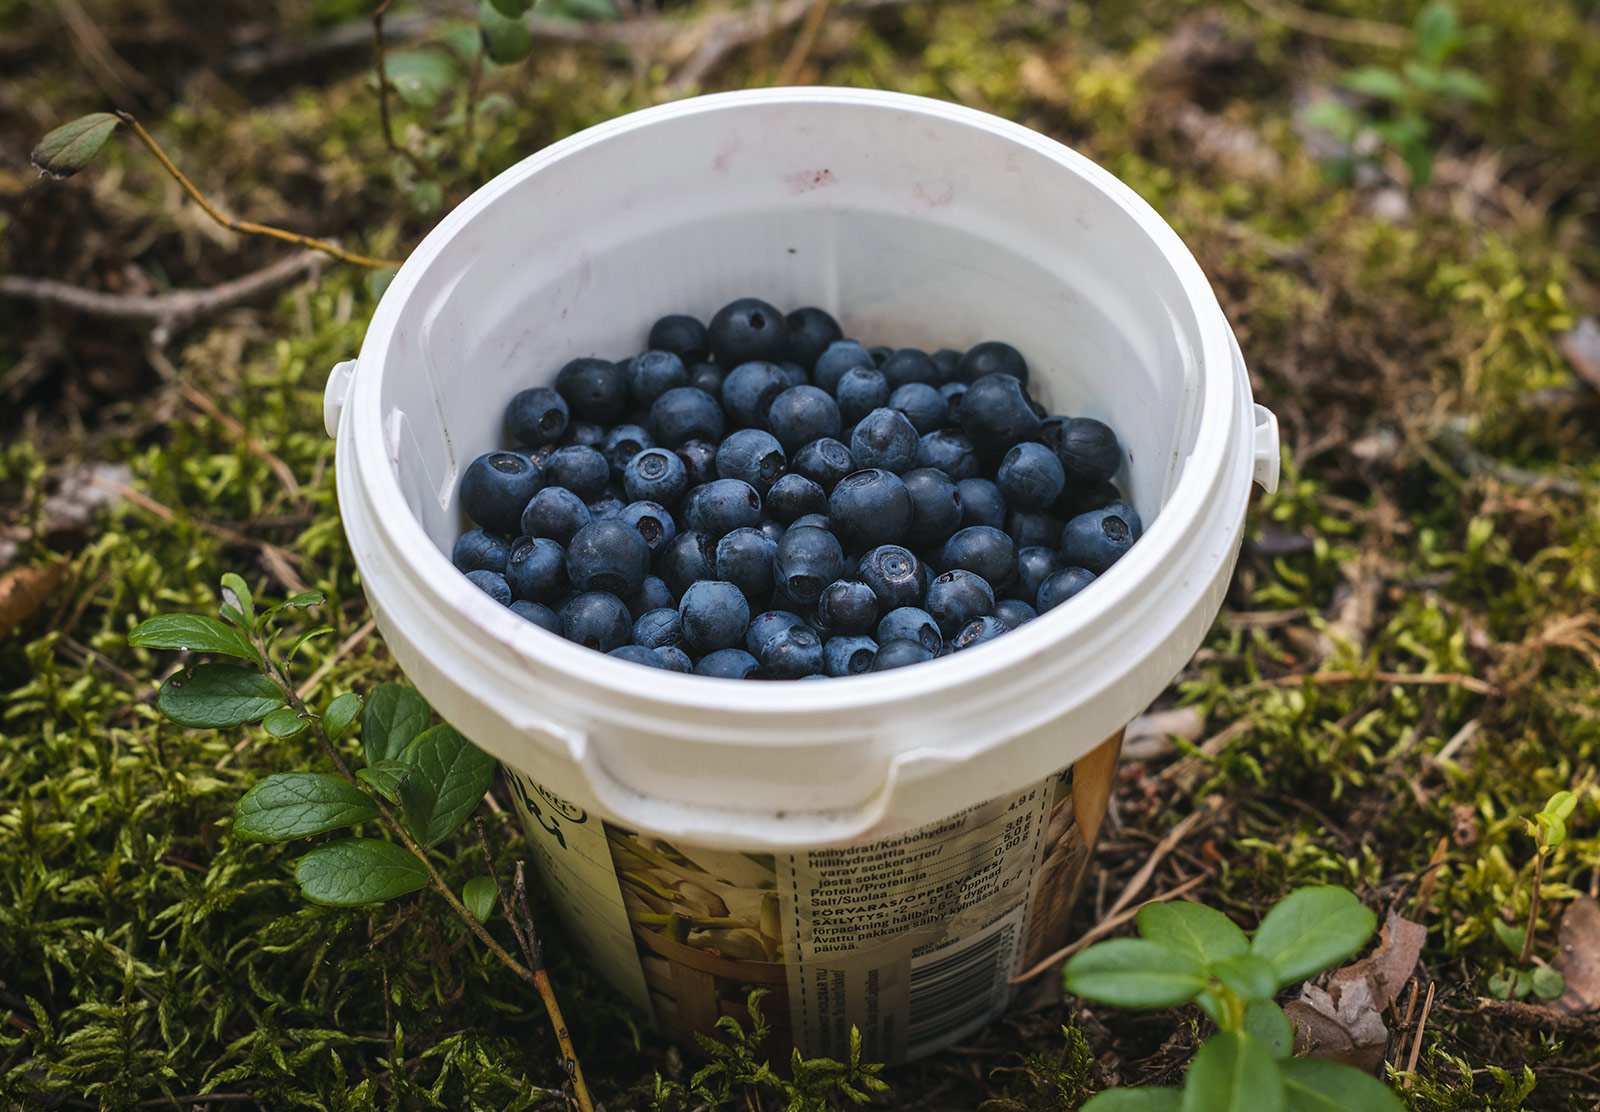 Tub filled with berries